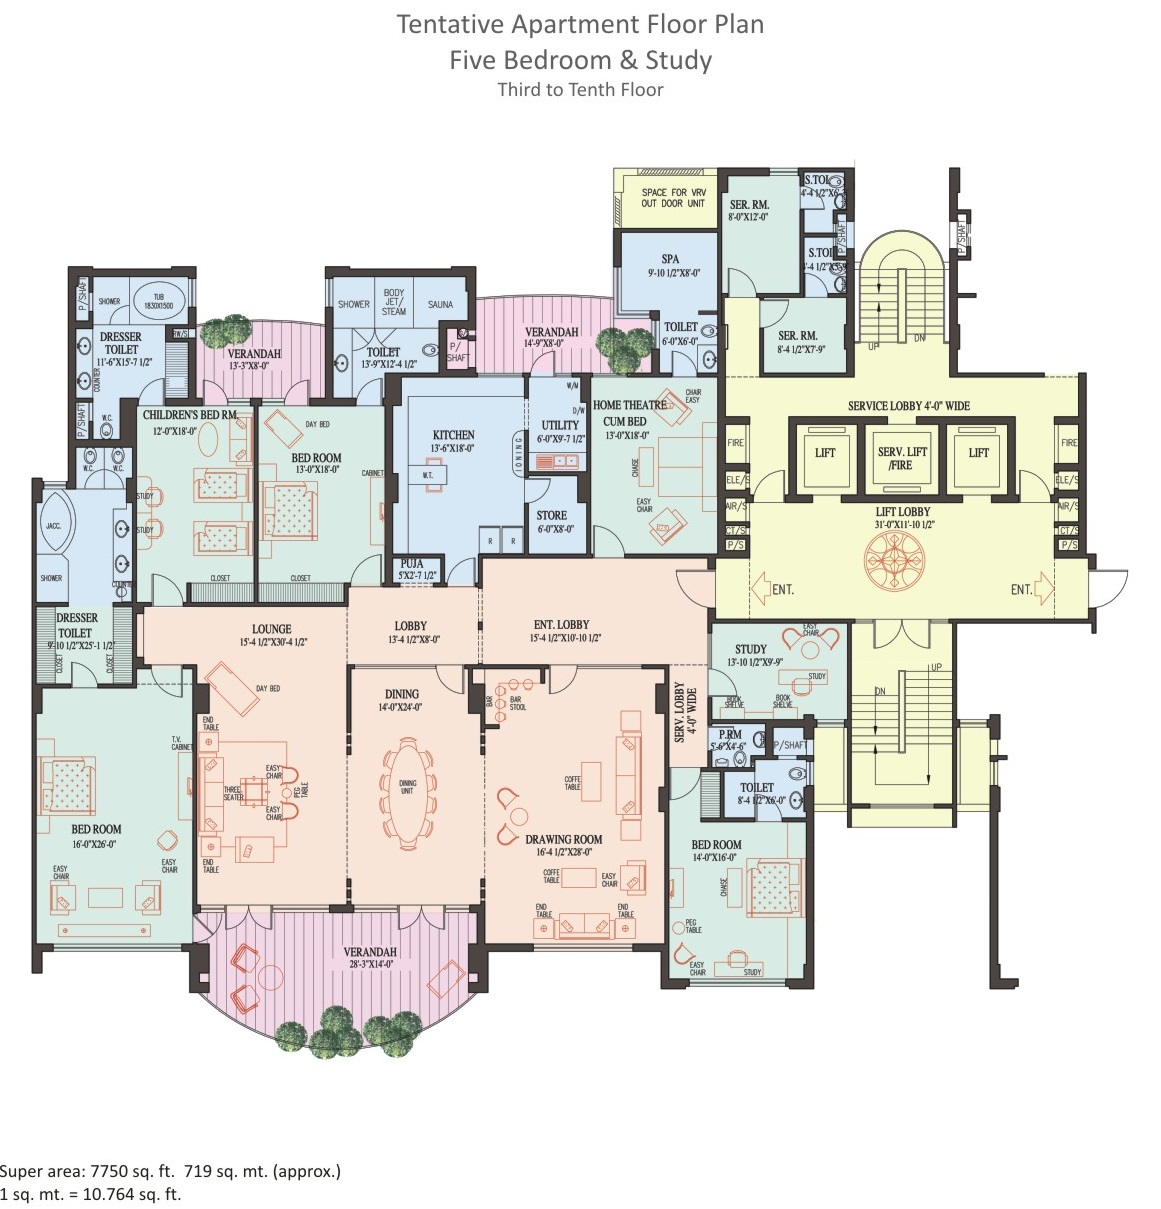 5 BHK Apartment - 3rd to 10th Floor